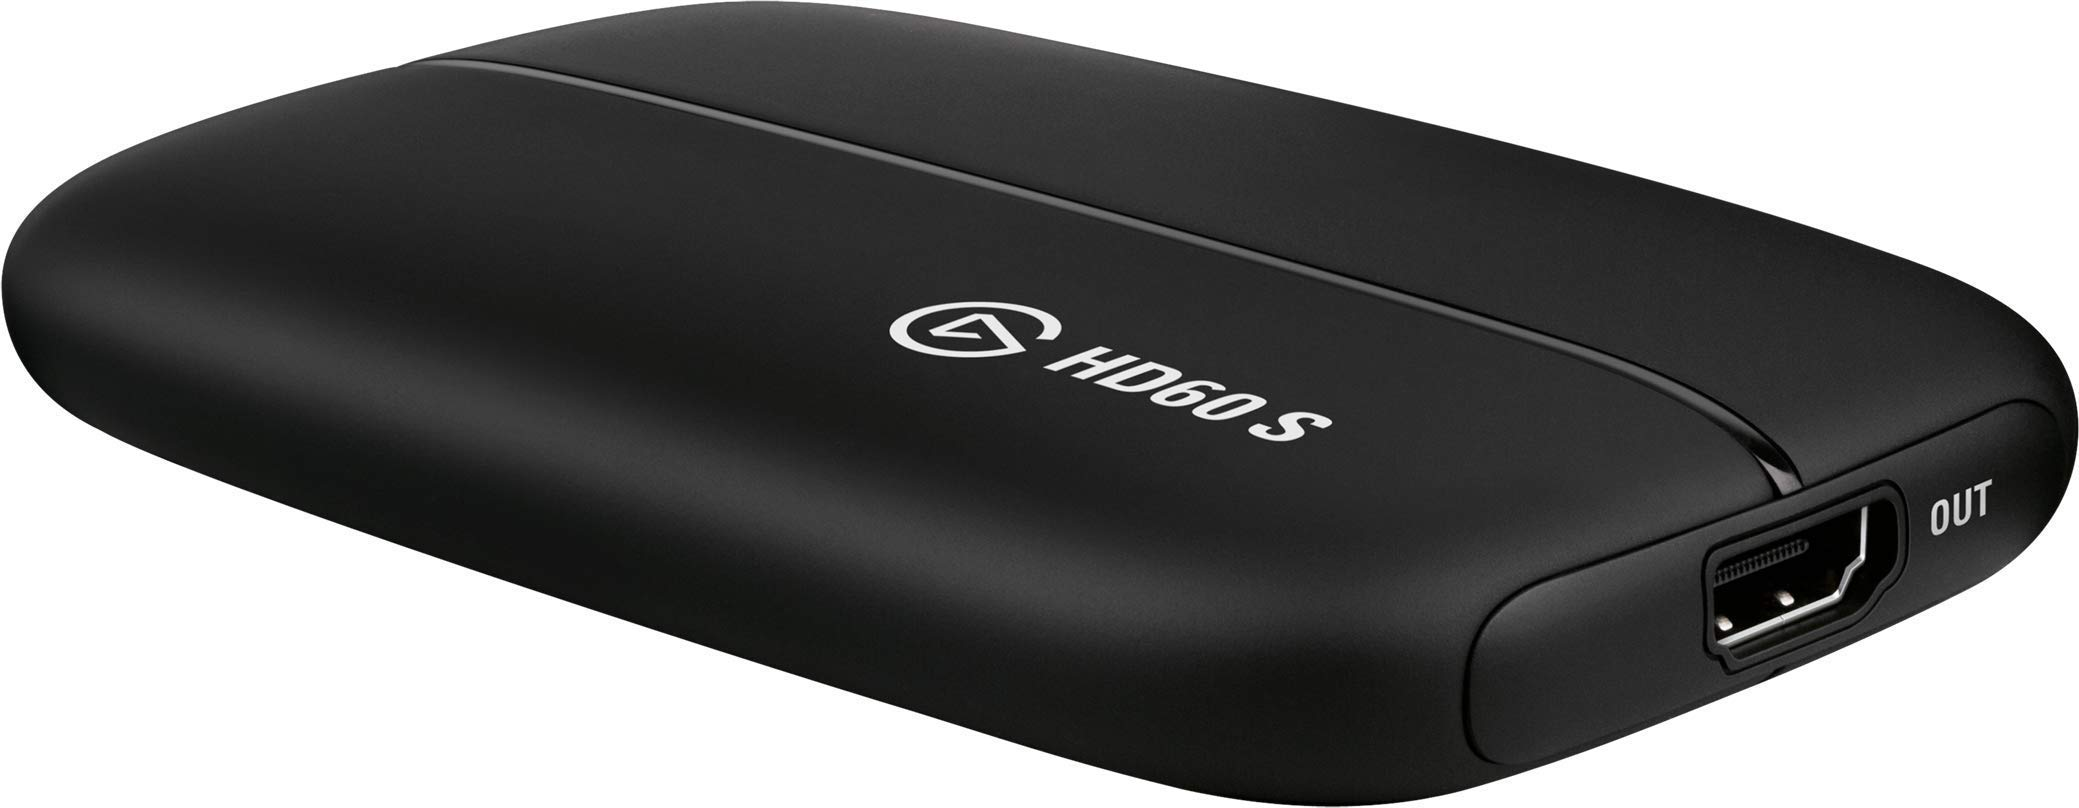 Elgato Game Capture Card HD60 S - Stream and Record in 1080p60, for PlayStation 4, Xbox One & Xbox 360 (Renewed)